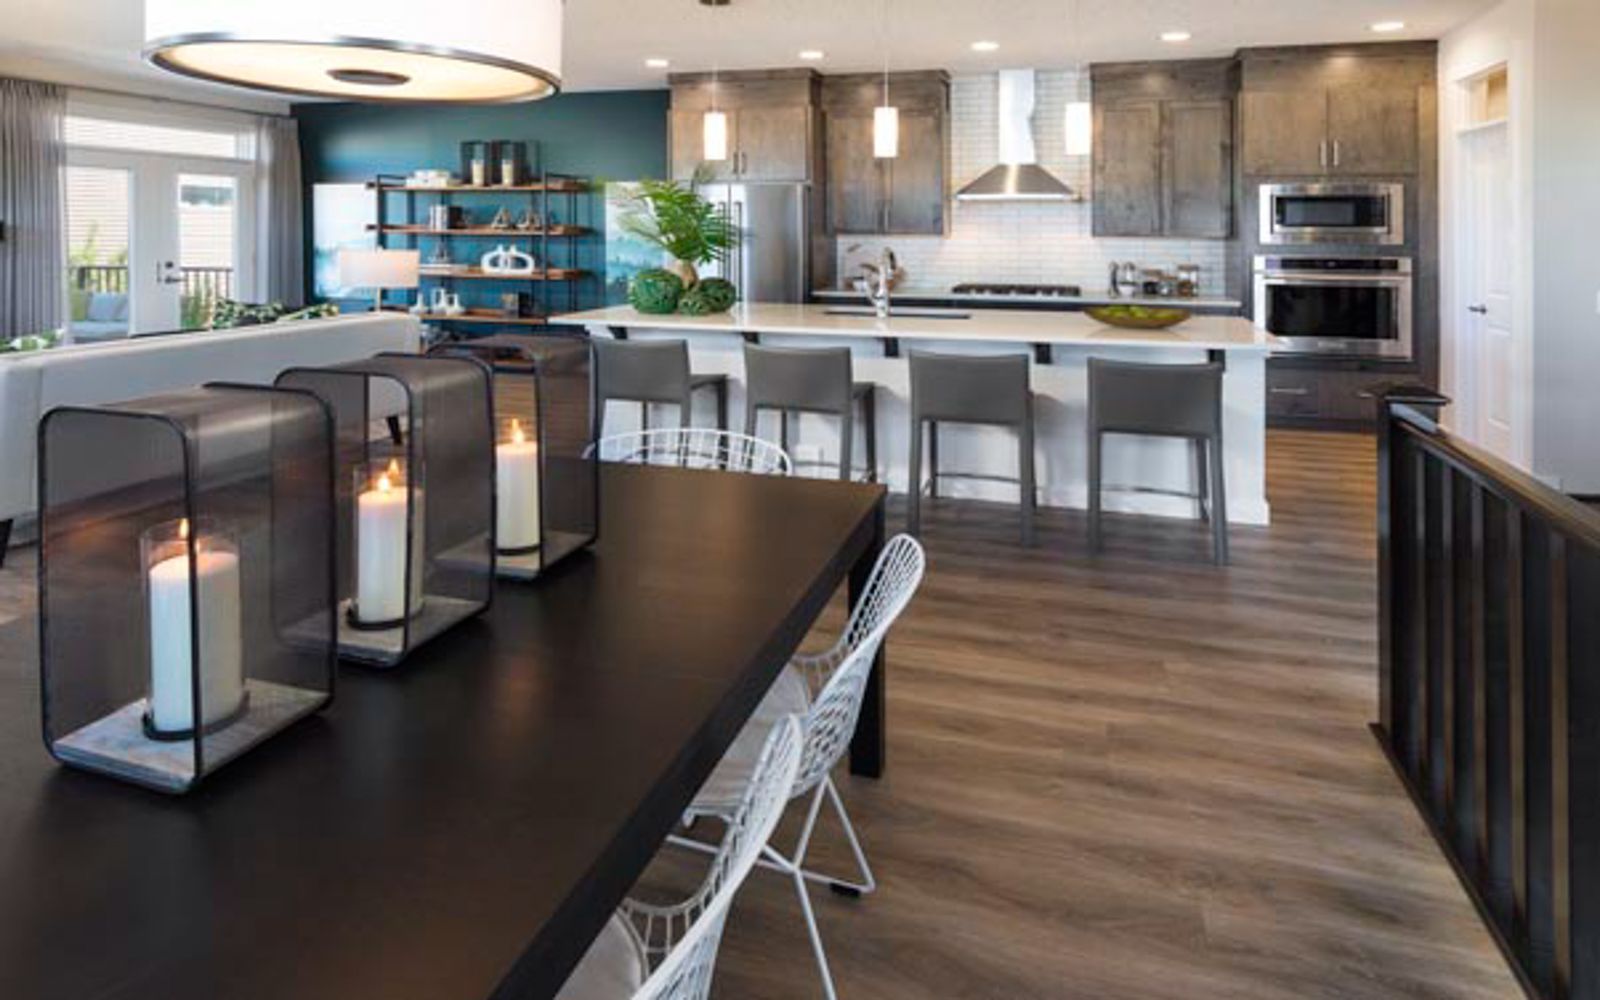 dining-room-kitchen-hudsonii-calgary